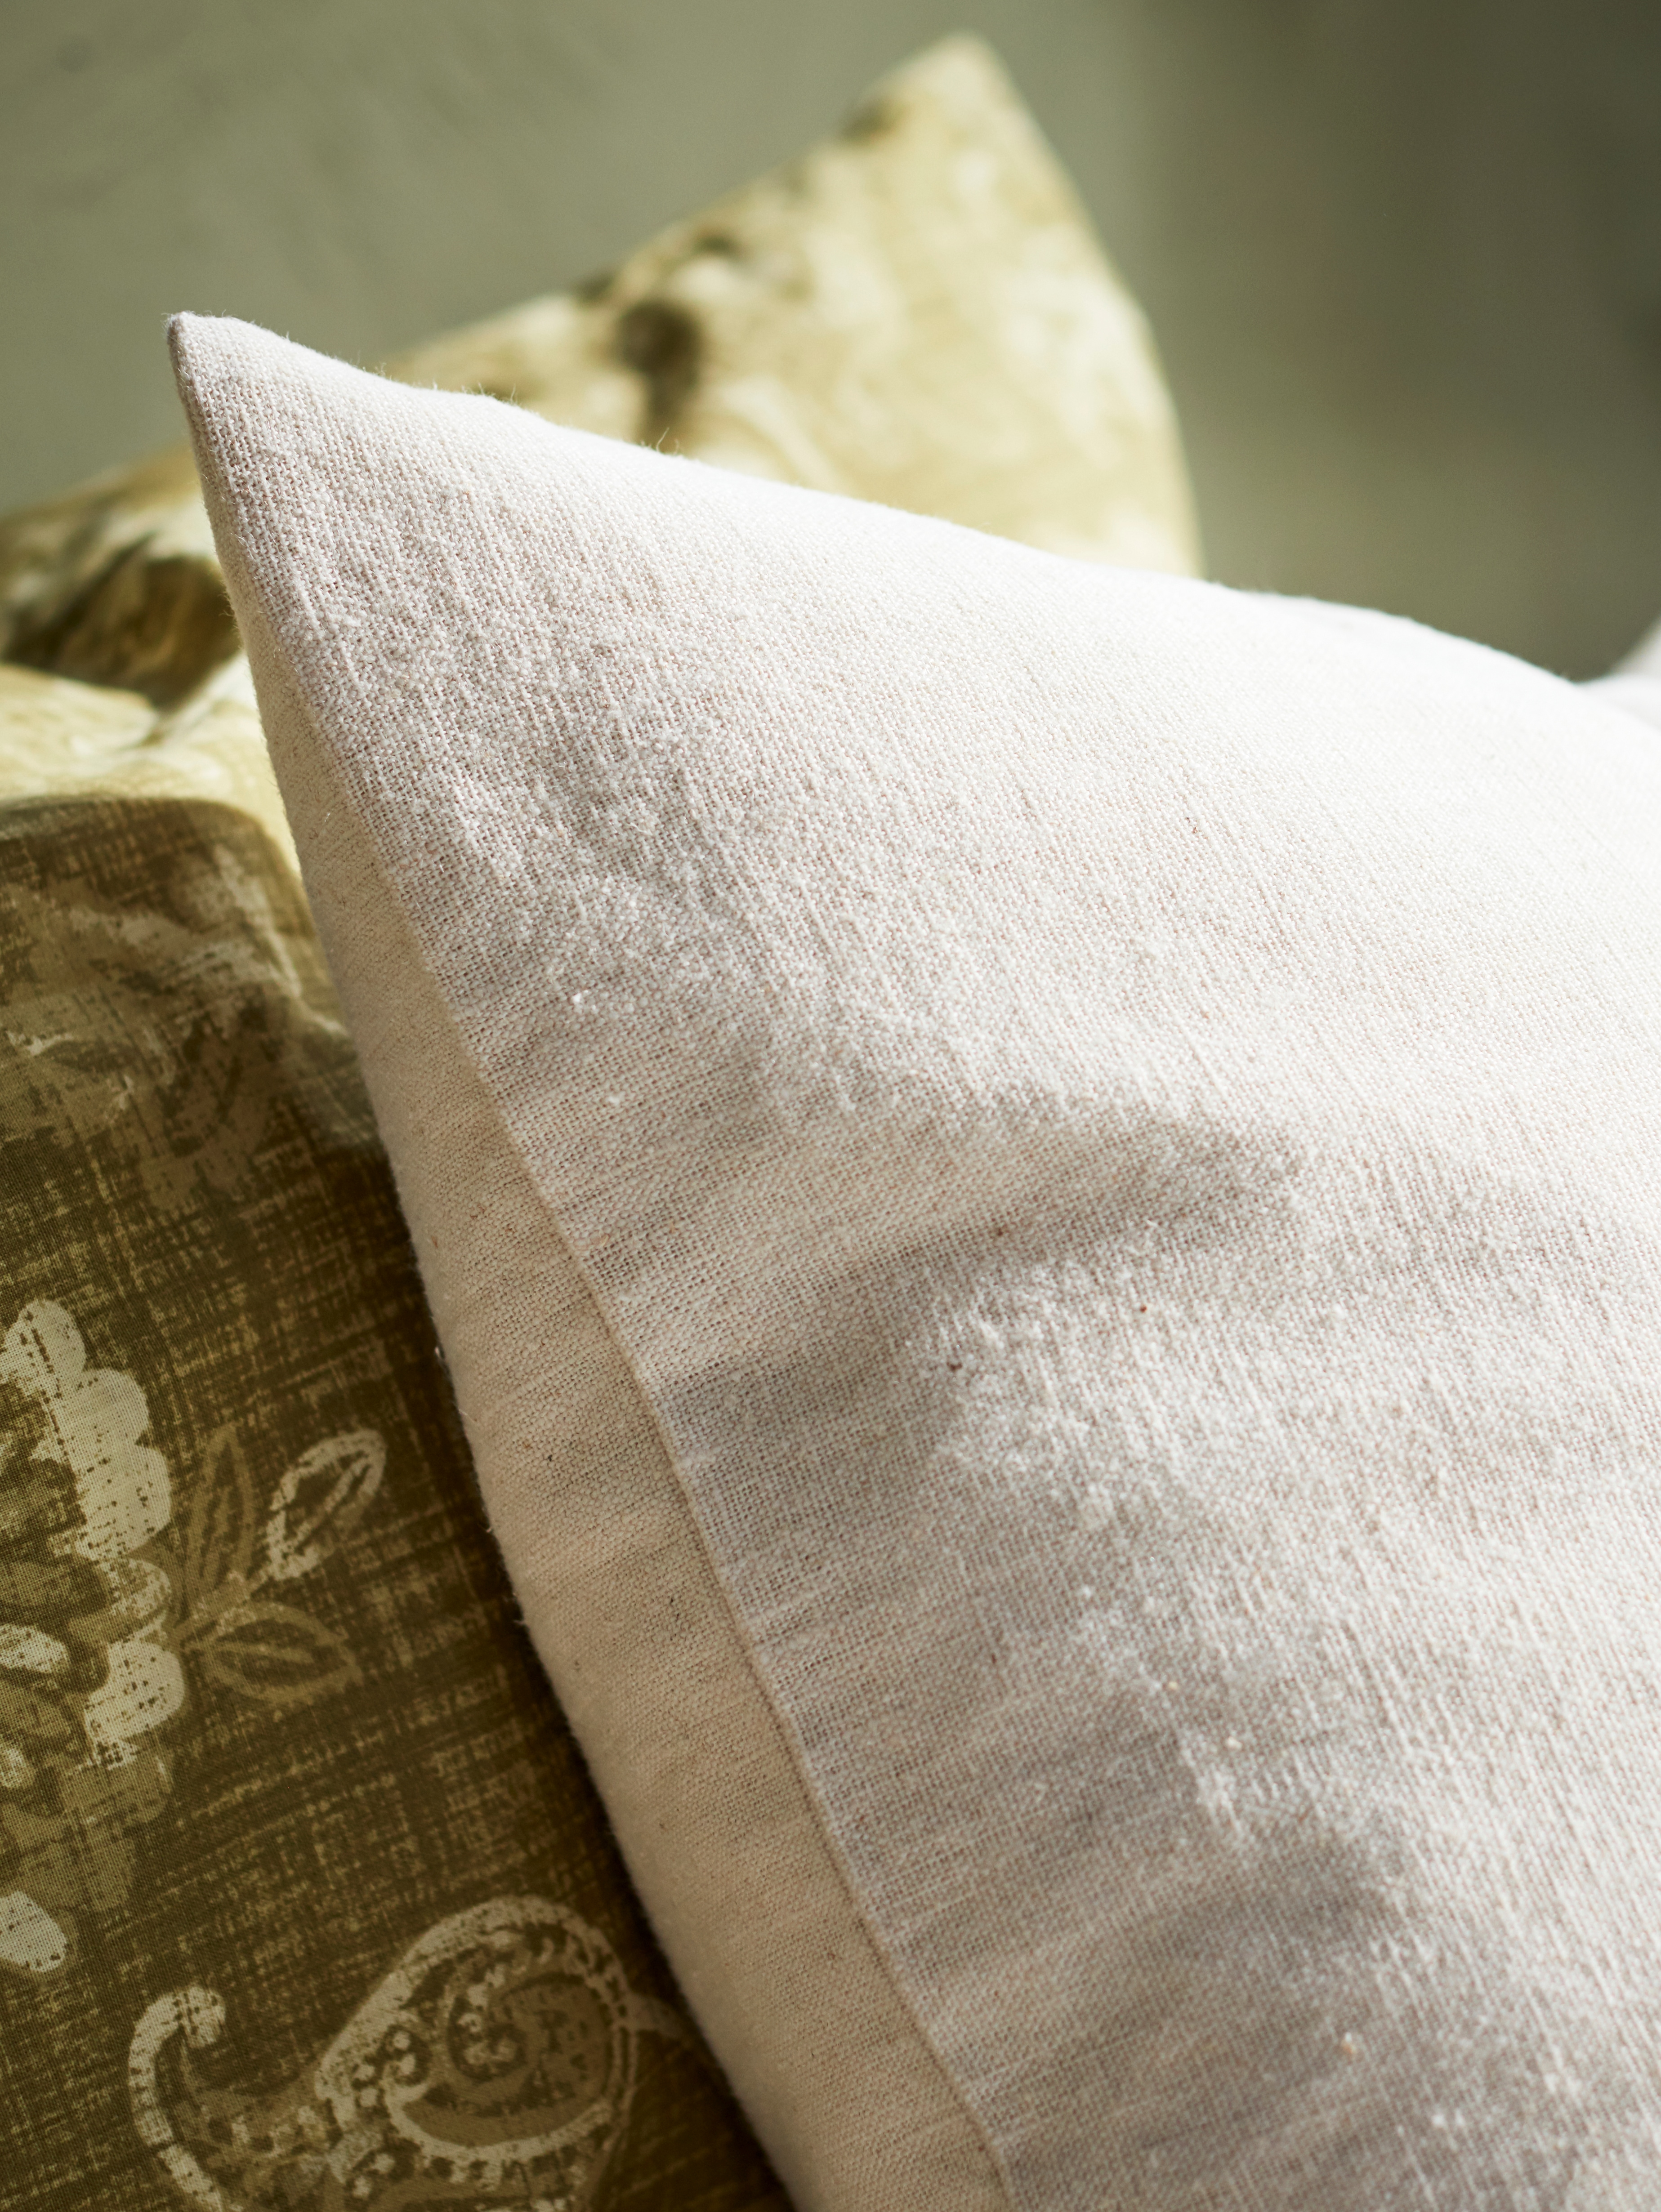 A close-up of a corner of a cushion with a natural VIGDIS cushion cover, showing the slightly irregular texture of its ramie.